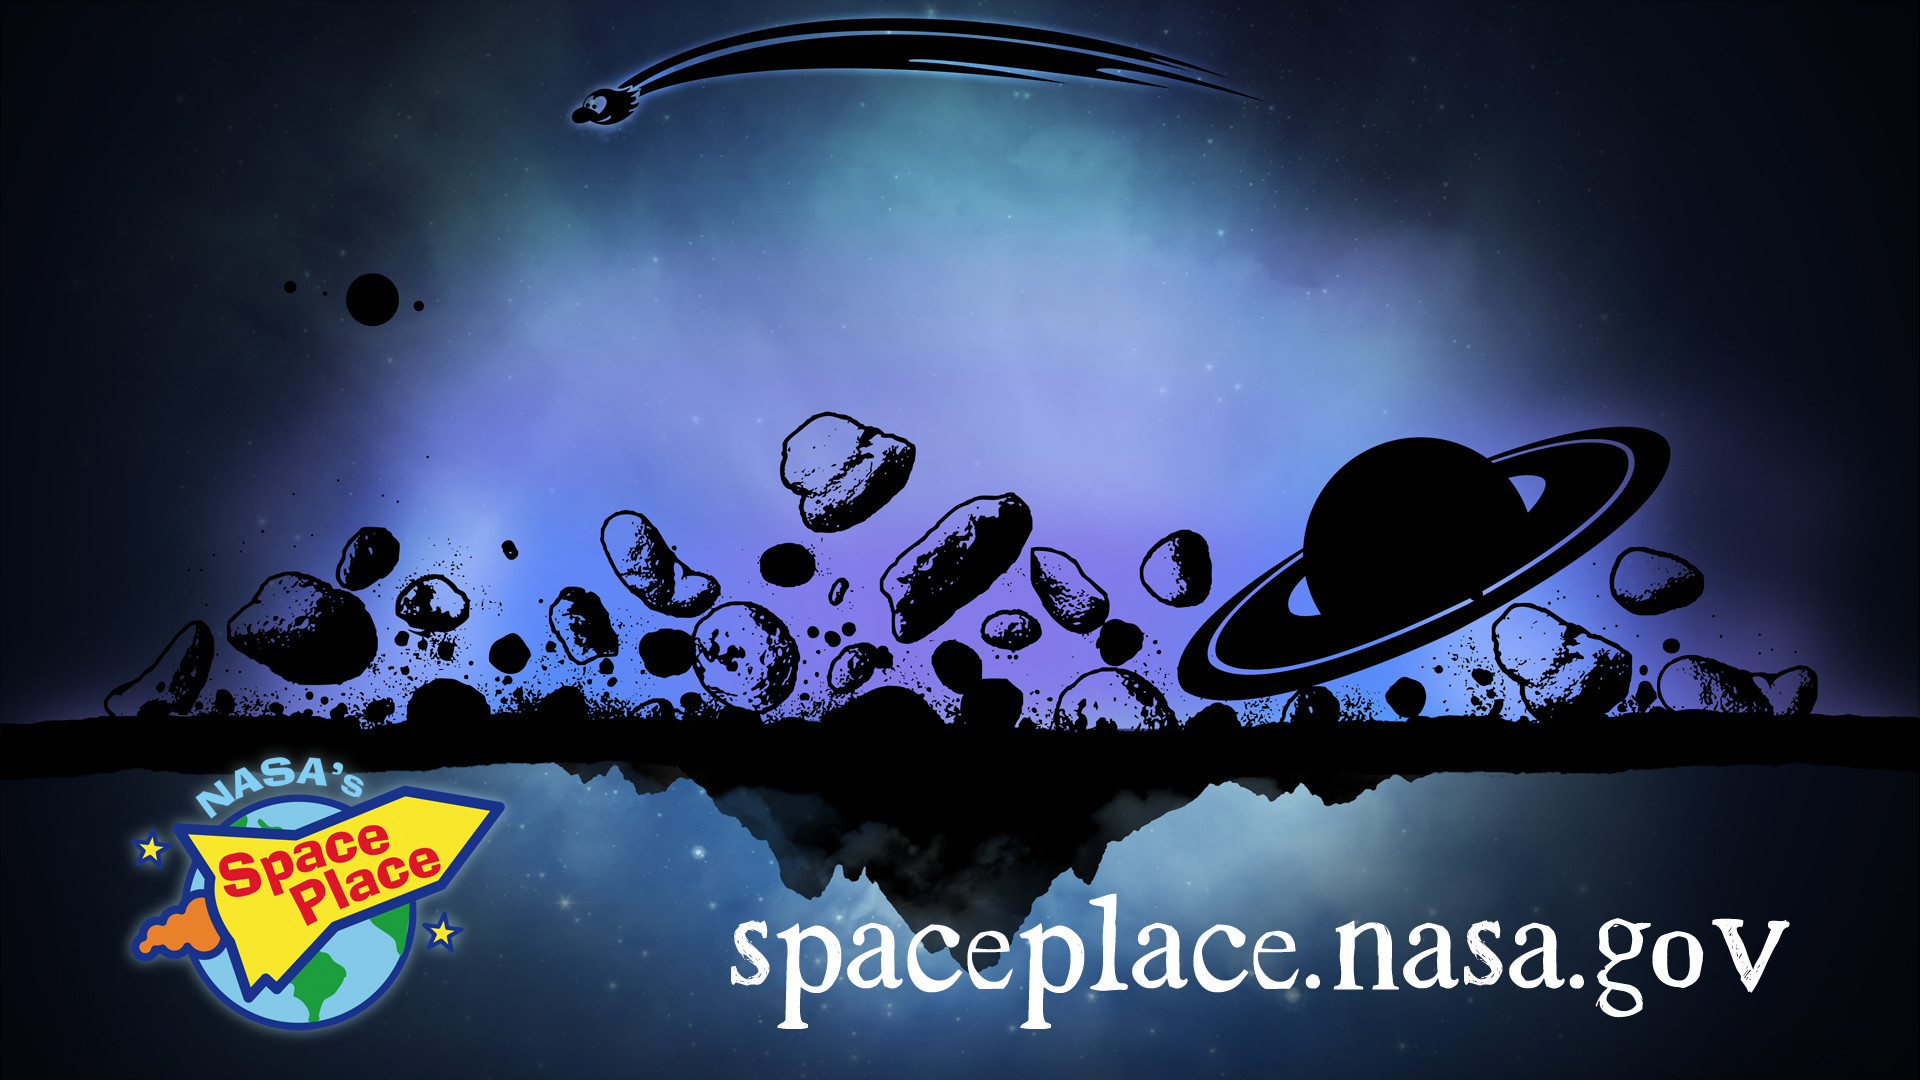 1920x1080 Download Space Place wallpaper for your computer!